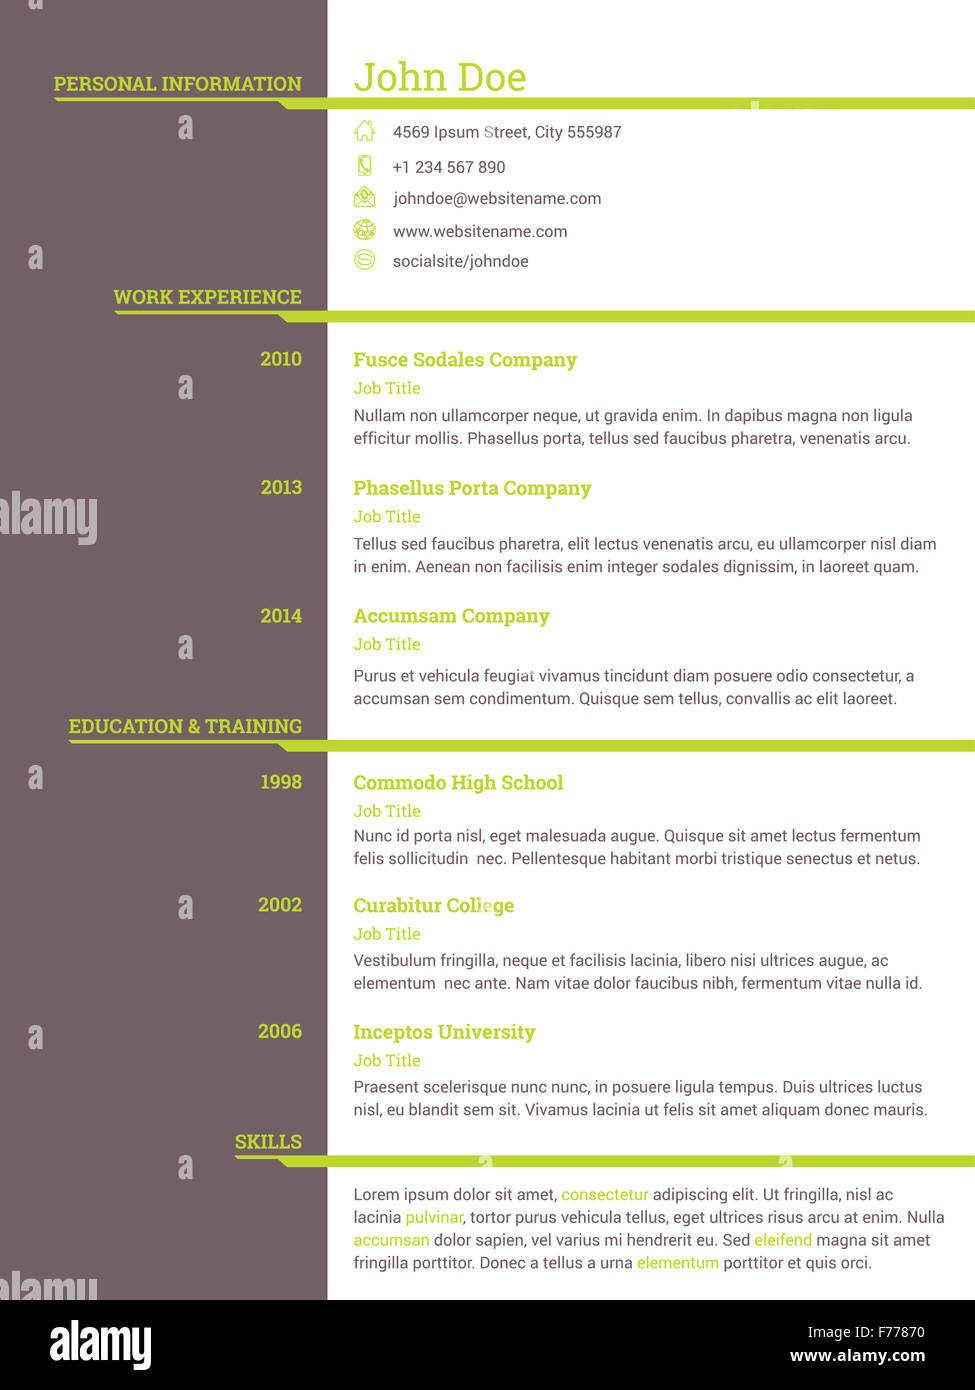 modern resume cv curriculum vitae template design for job seekers